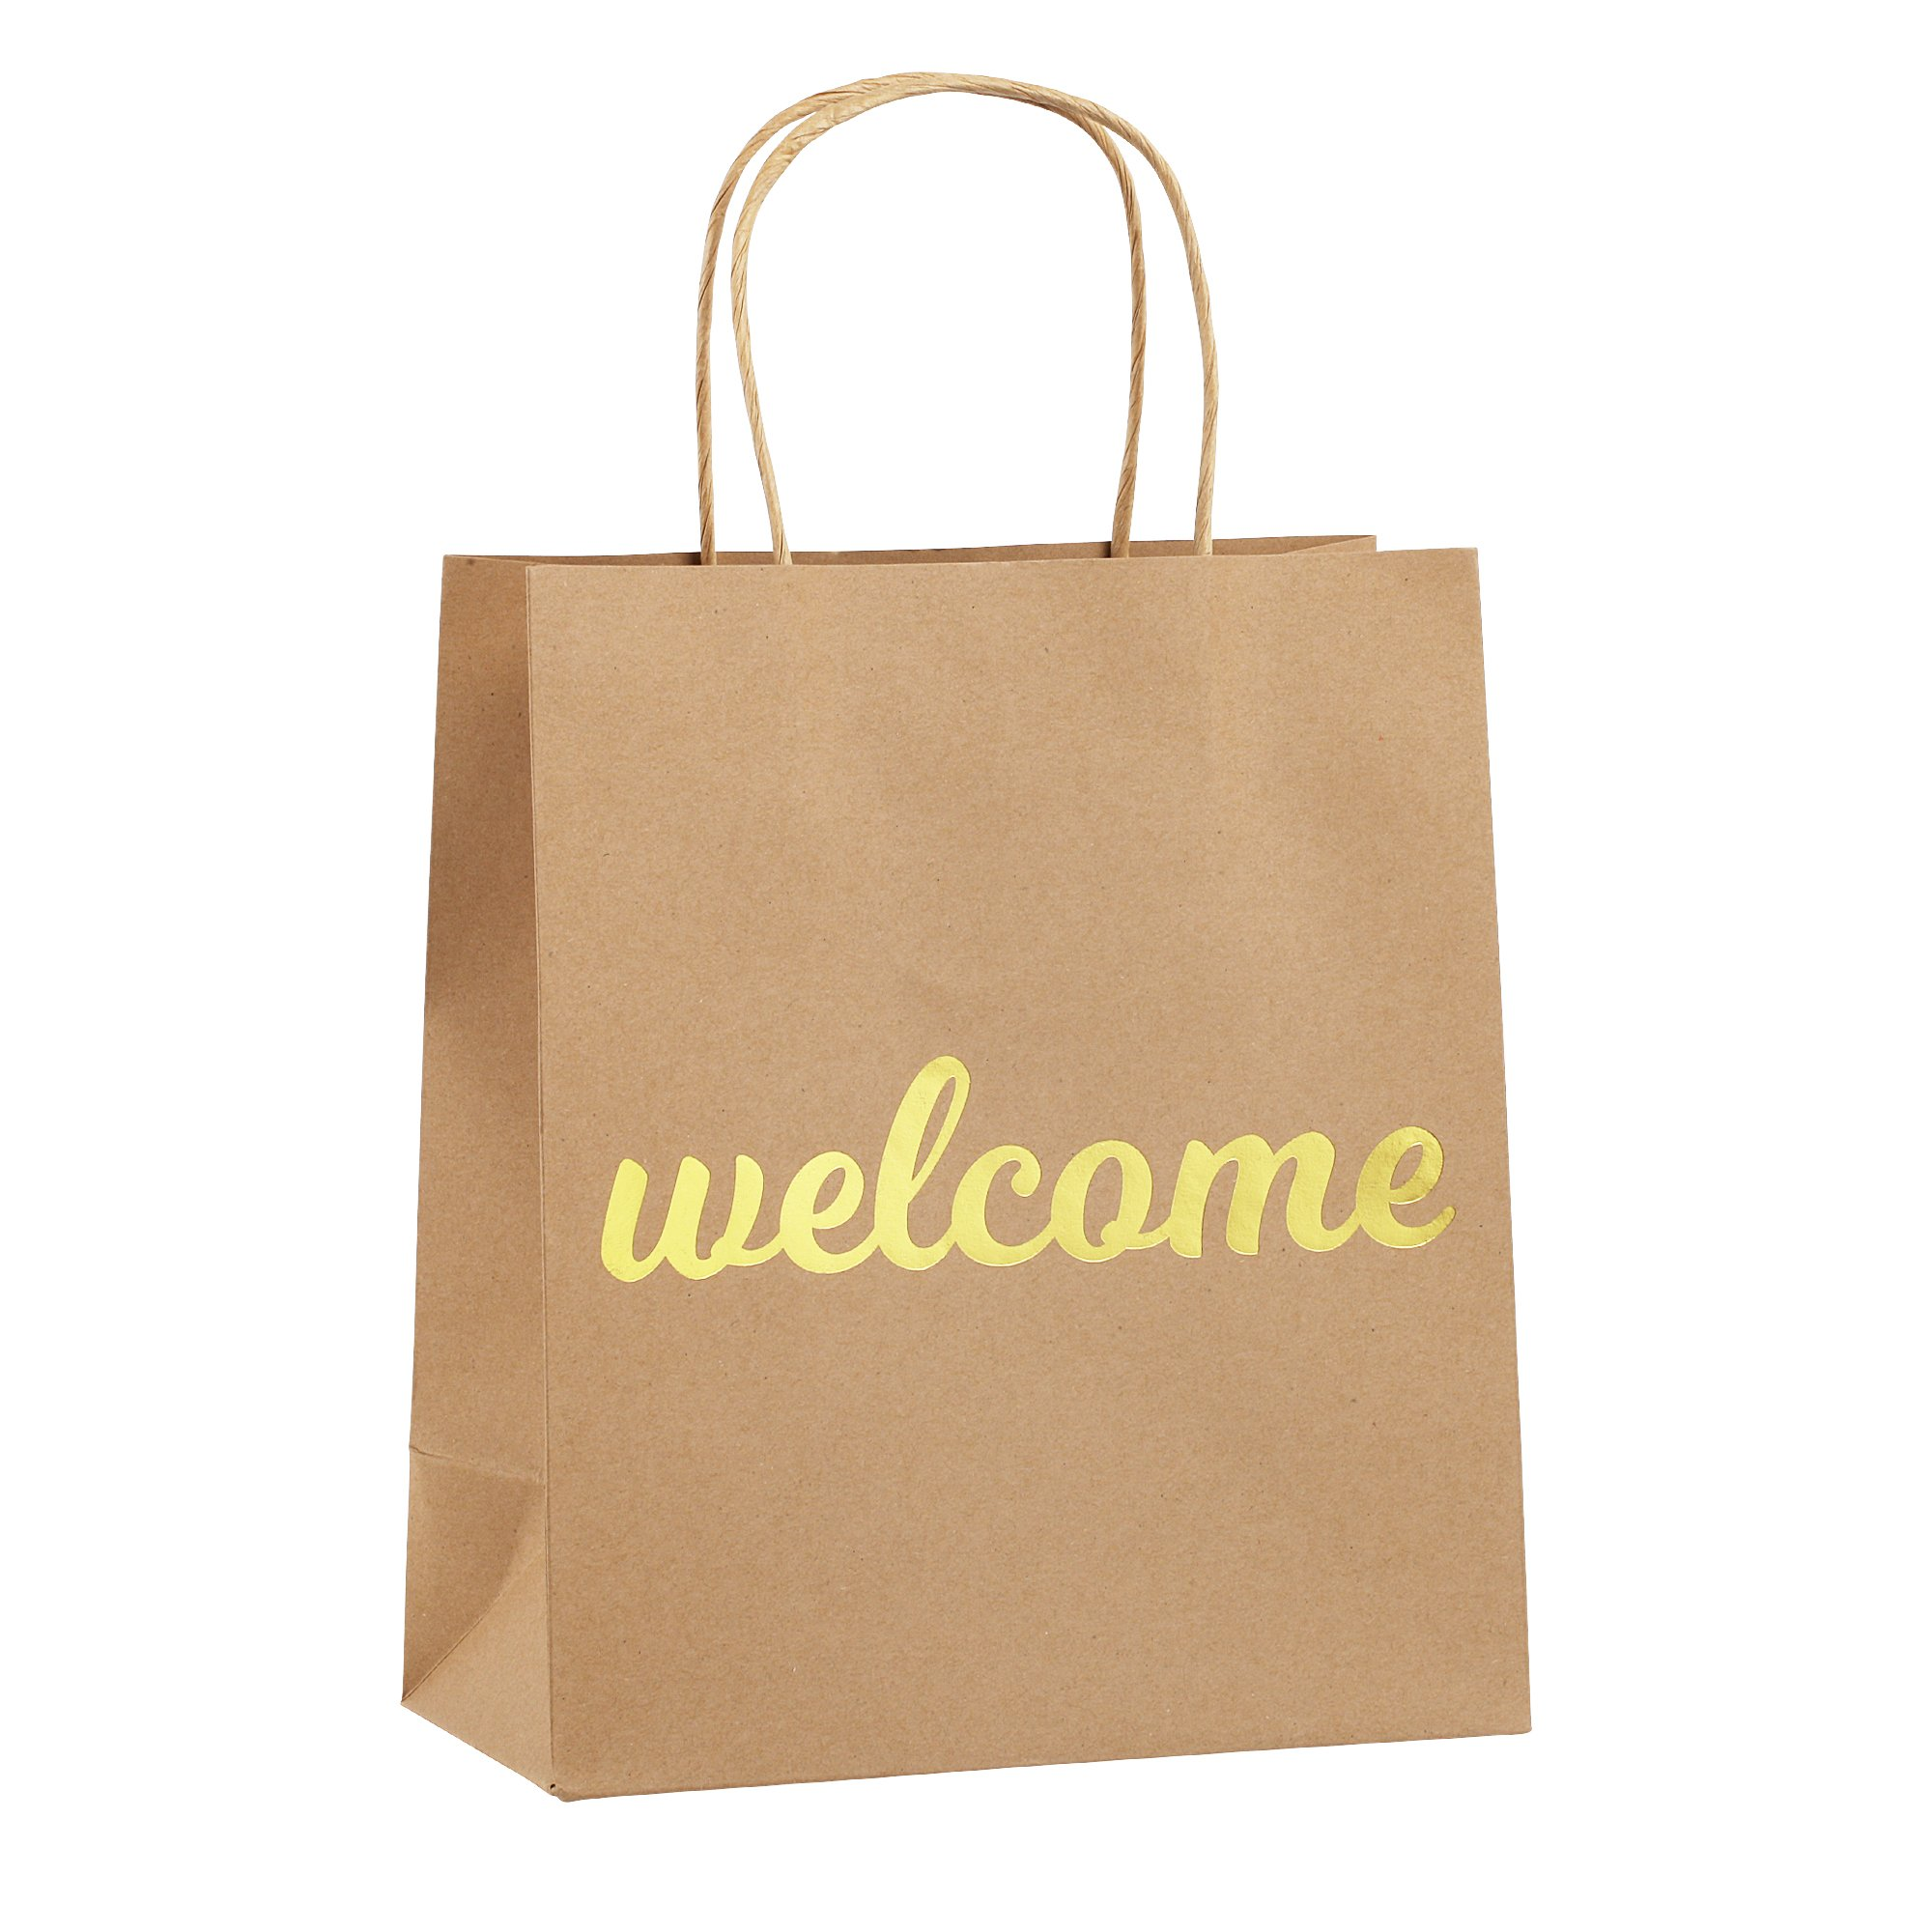 Welcome Bags for Wedding Guests - High Quality Kraft Paper Bags Bulk Perfect as Wedding Welcome Bags for Hotel Guests - Excellent to Present Wedding Favors for Guests (25-Pack)